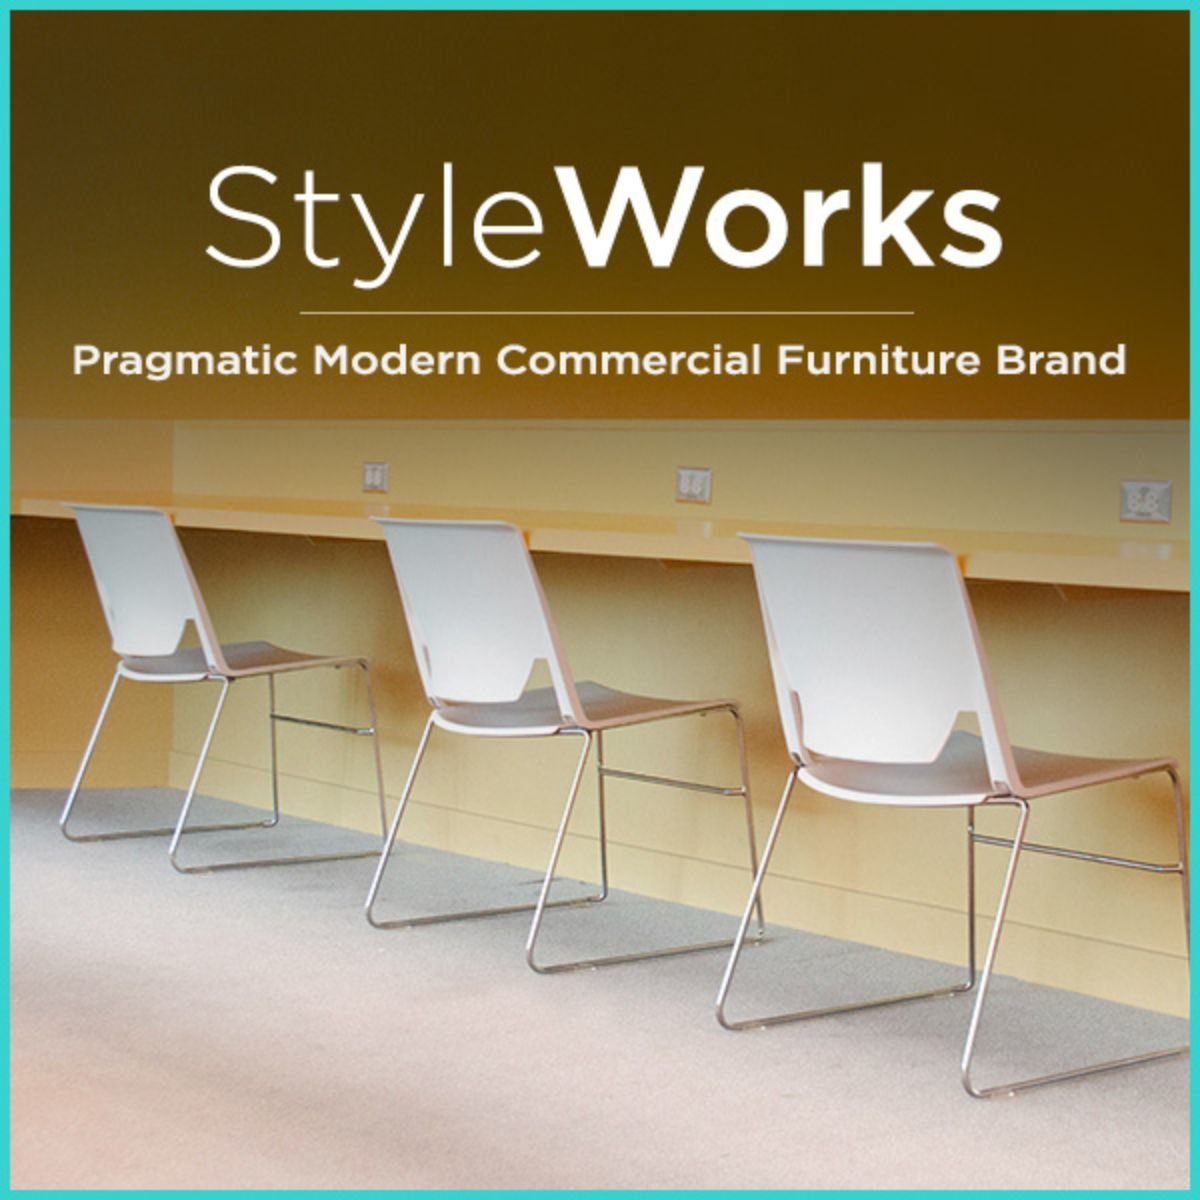 Furniture Business Name Ideas Furniture Business Name Generator